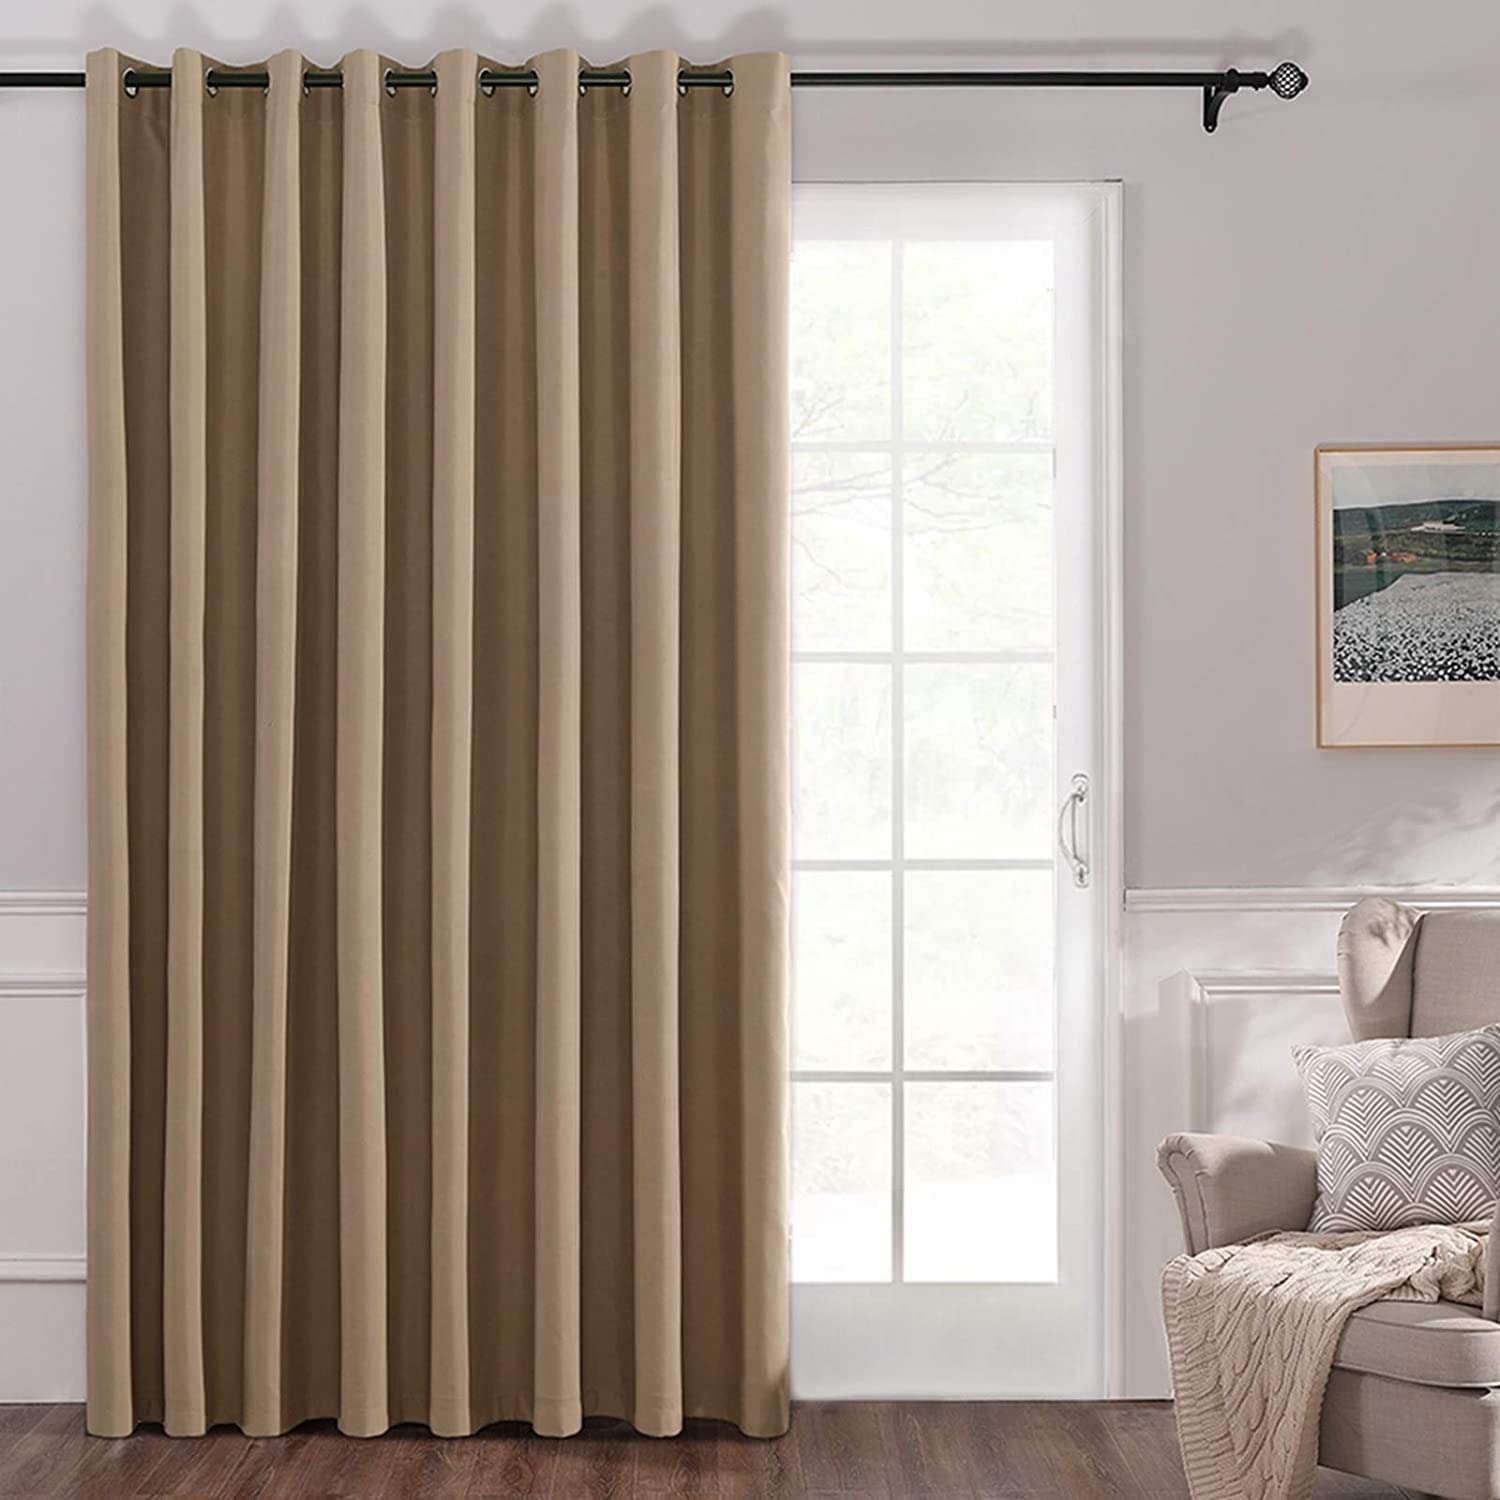 Amazon Com Miulee 100 Blackout Vertical Blinds For Sliding Glass Door Solid Grommet Window Curtain 1 Panel For Space Shared Room Divider W 100 X L 84 Inches Khaki Kitchen Dining